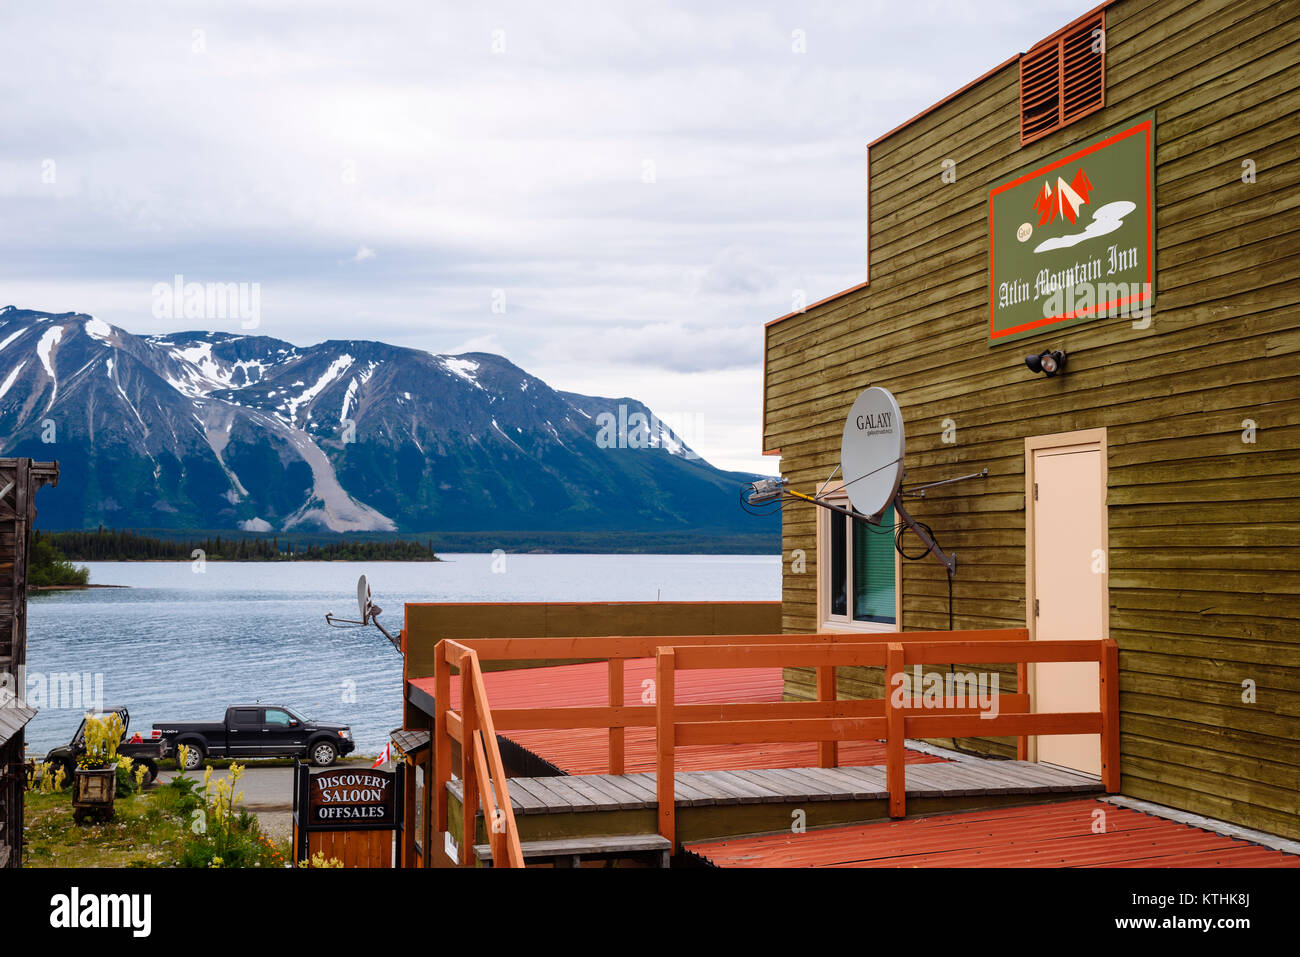 Die Atlin Mountain Inn in dem kleinen, abgelegenen Stadt Atlin in British Columbia, Kanada Stockbild